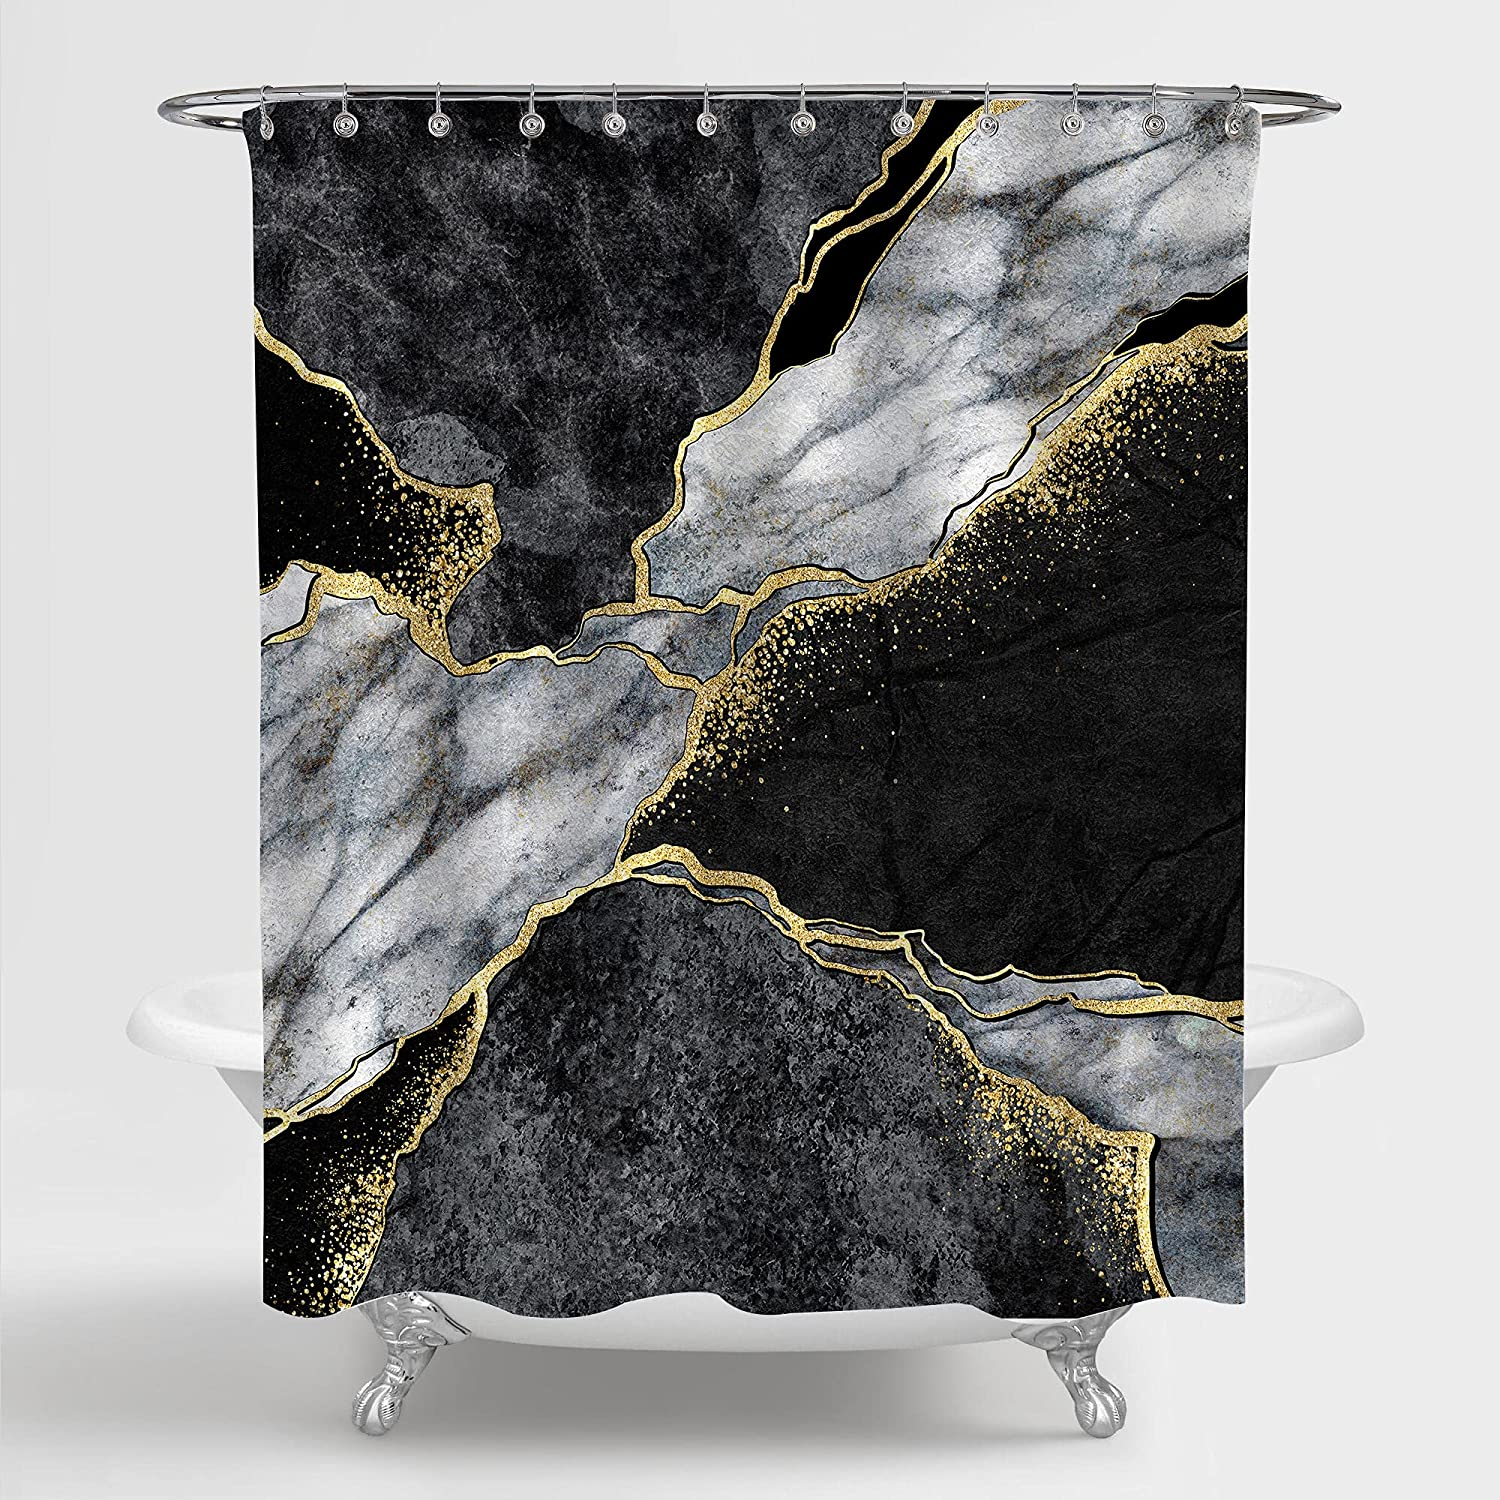 MitoVilla Black Marble Shower Curtain for Bathroom, Abstract Grey Black and White Marble with Gold Cracks Bathroom Curtain for Modern Bath Decor, Stone Texture Stall Shower Curtain, 72